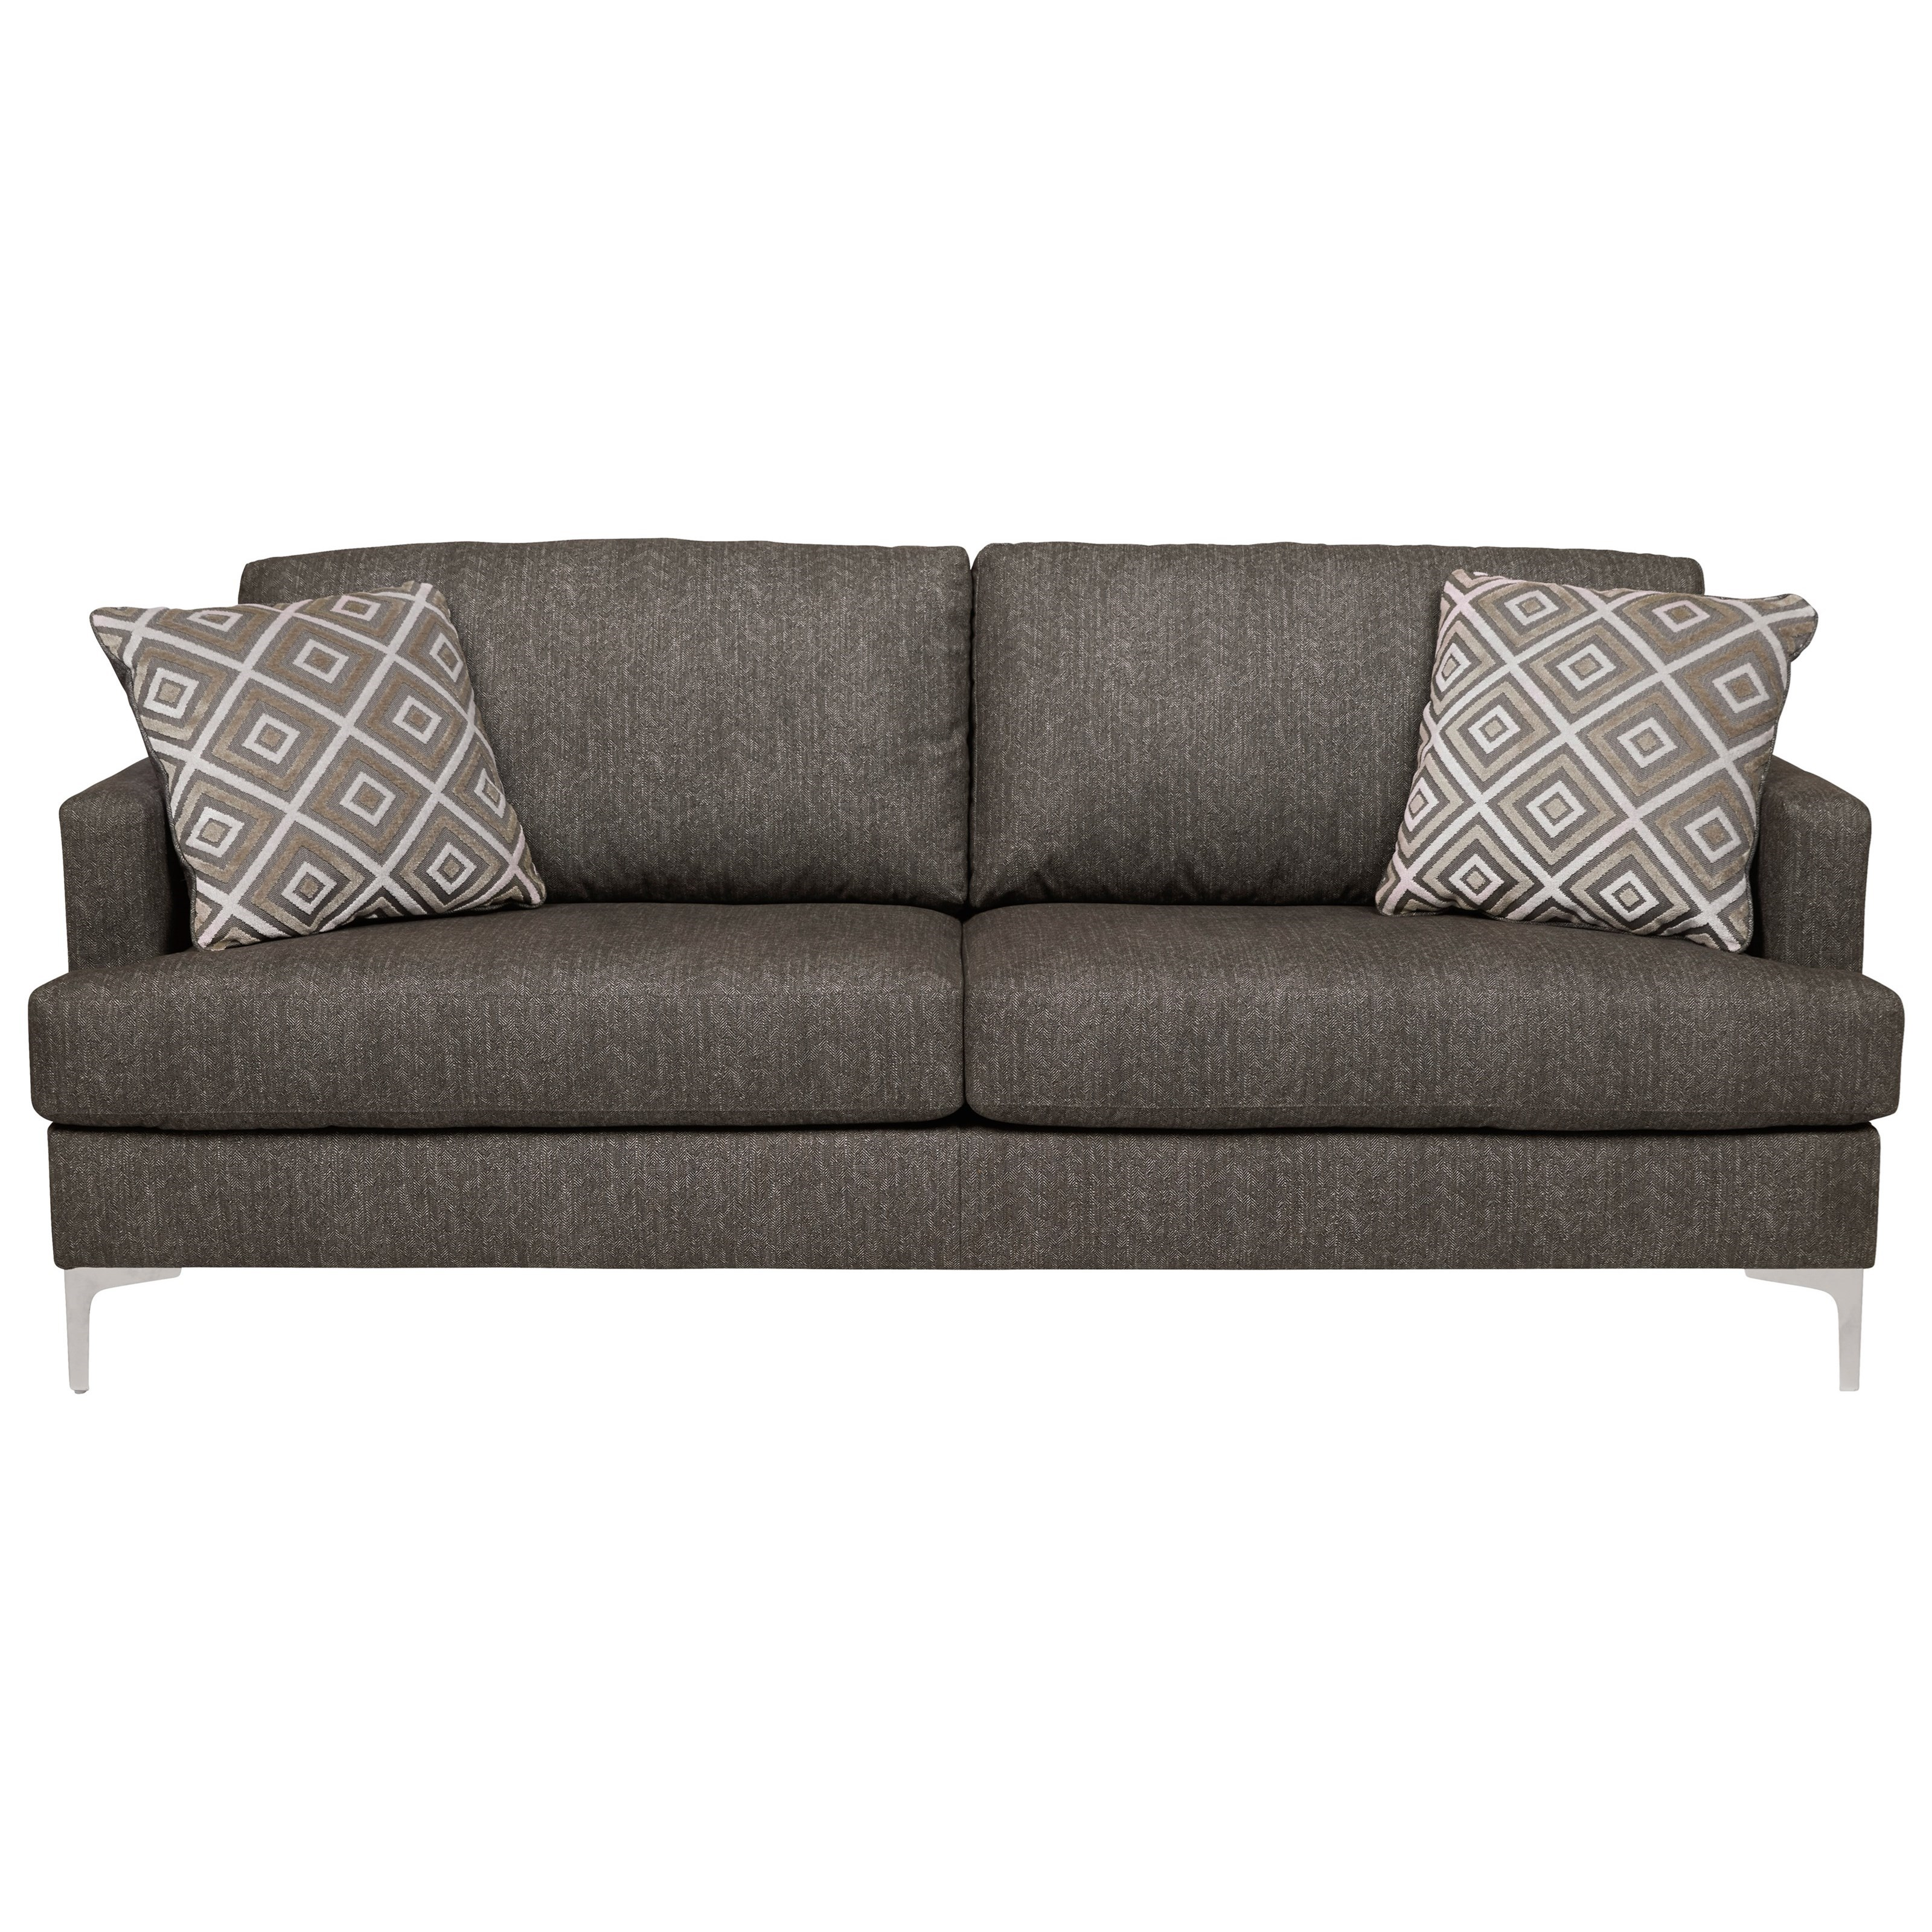 Arcola RTA Sofa by Signature Design by Ashley at Lapeer Furniture & Mattress Center